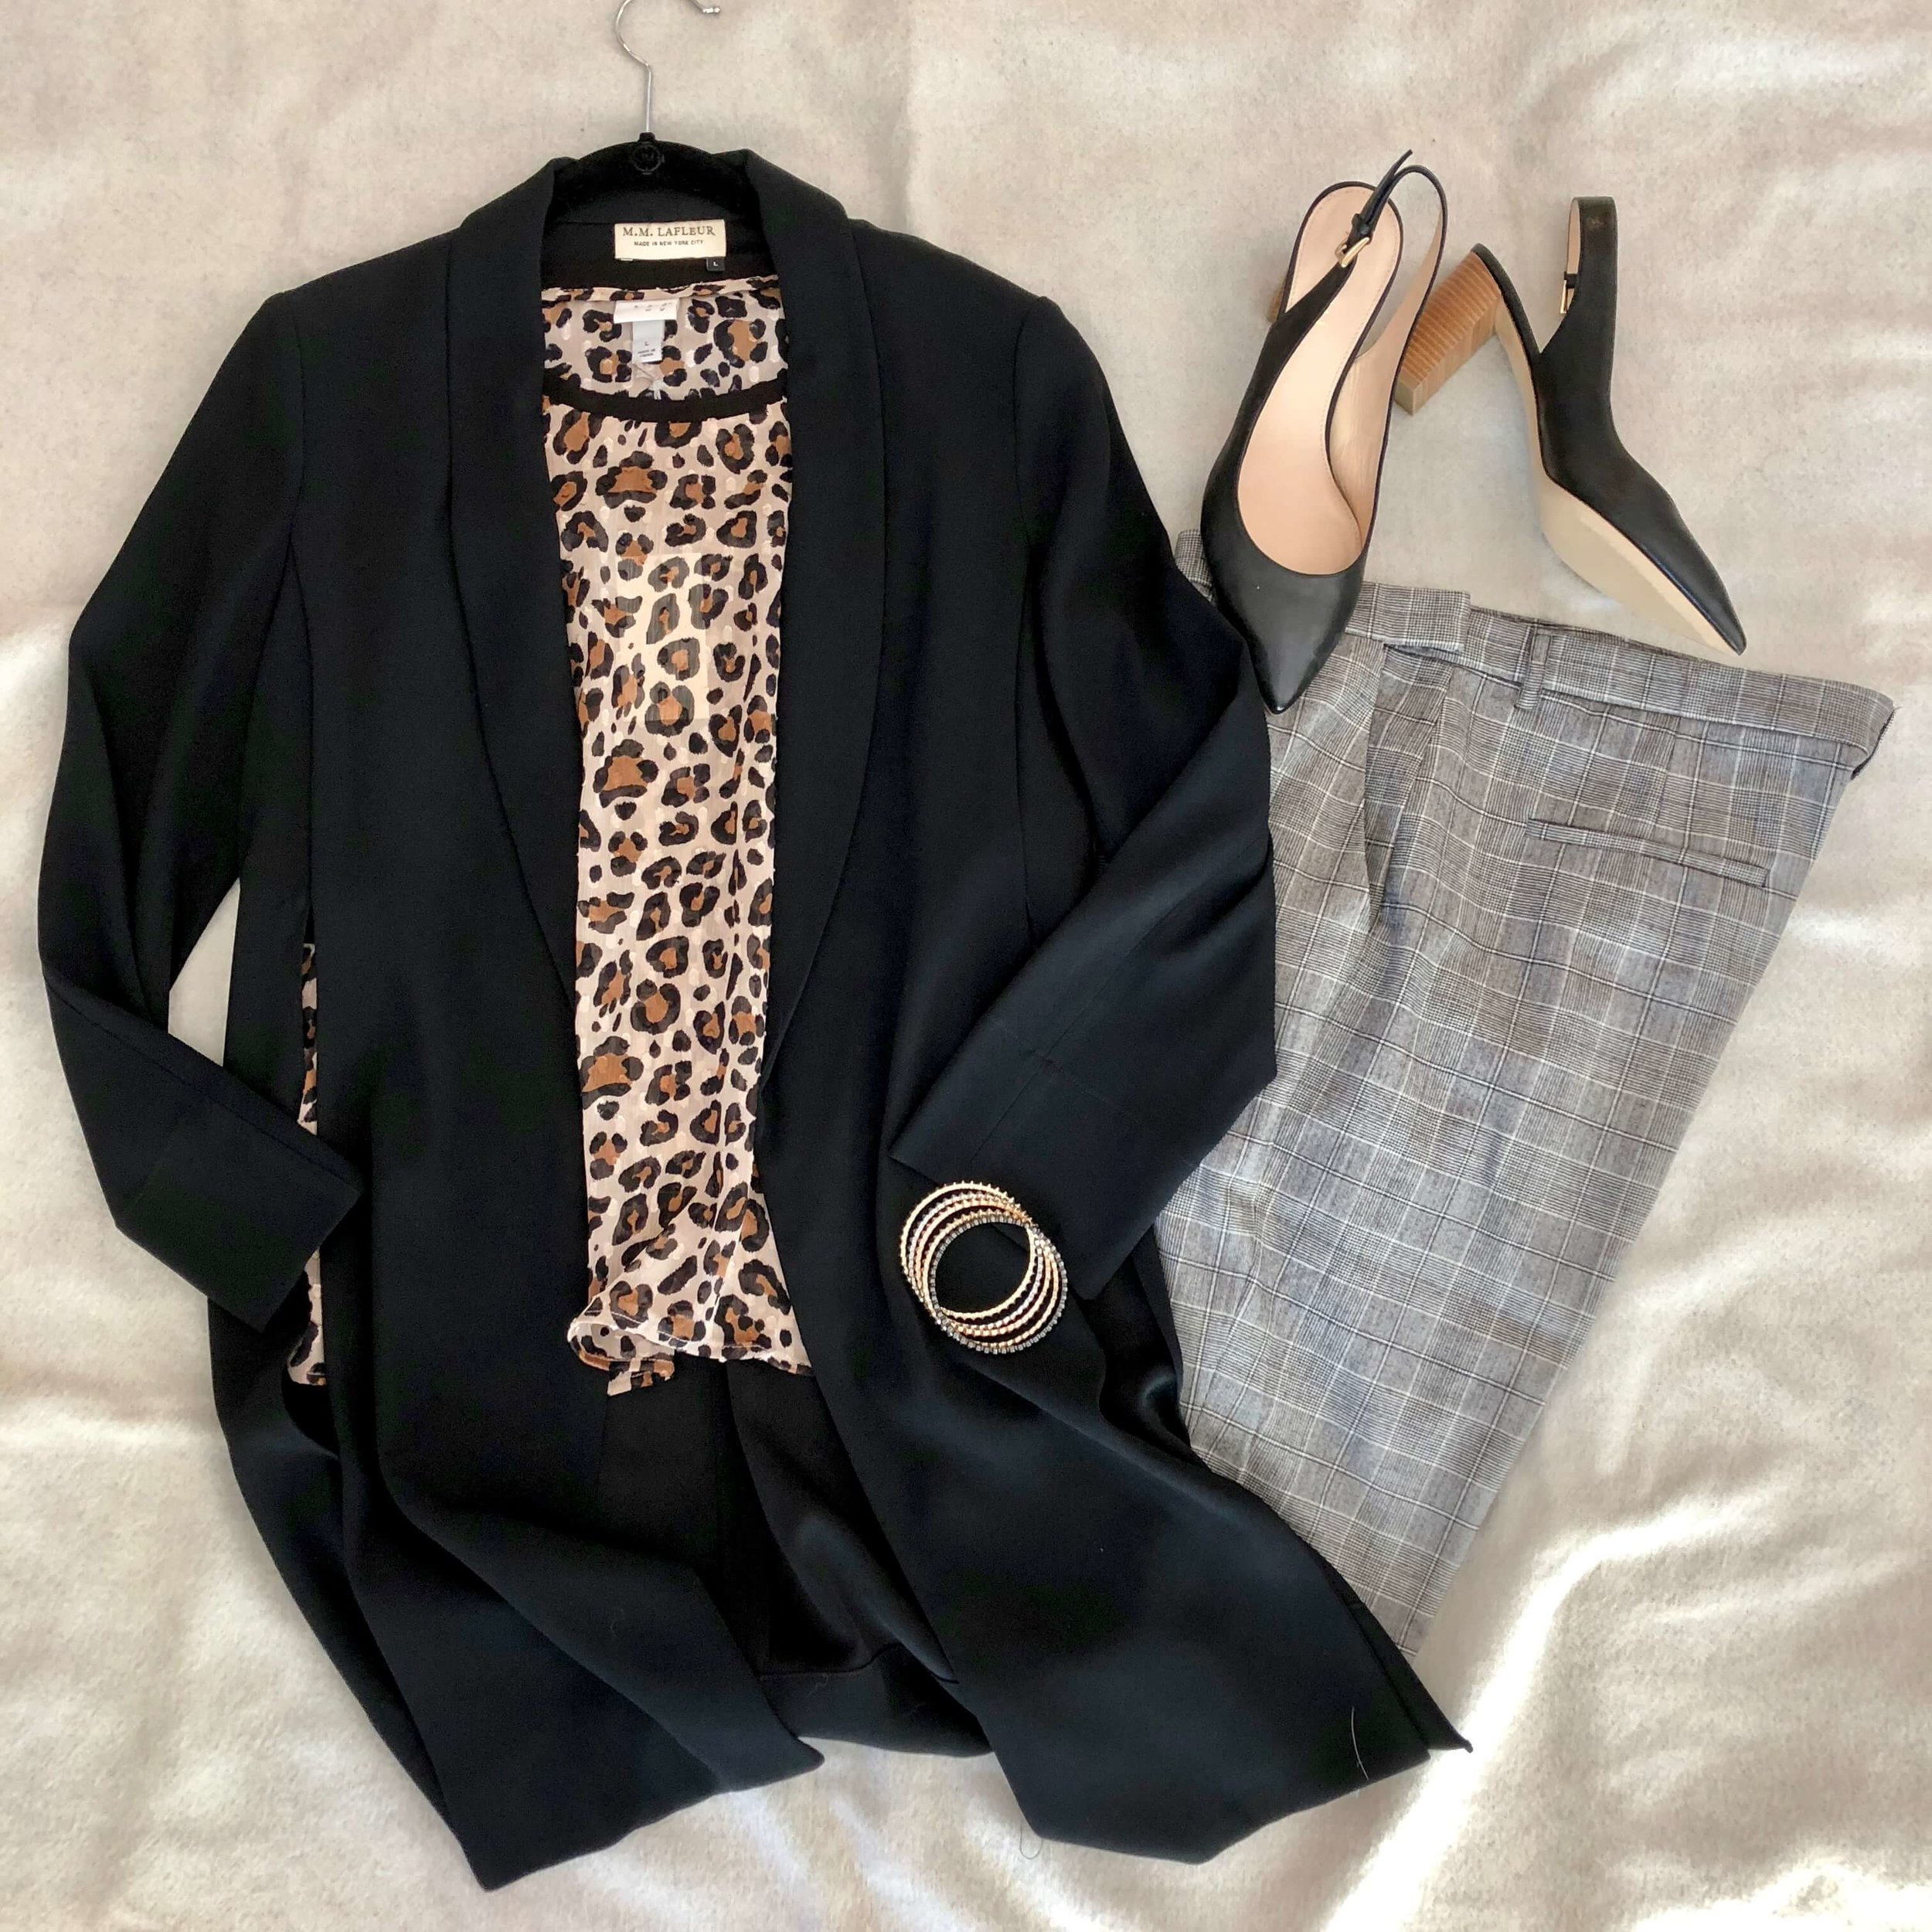 A black blazer and plaid pants may not feel specifically feminine, but the juxtaposition of leopard print shifts it to a much more stylish look.